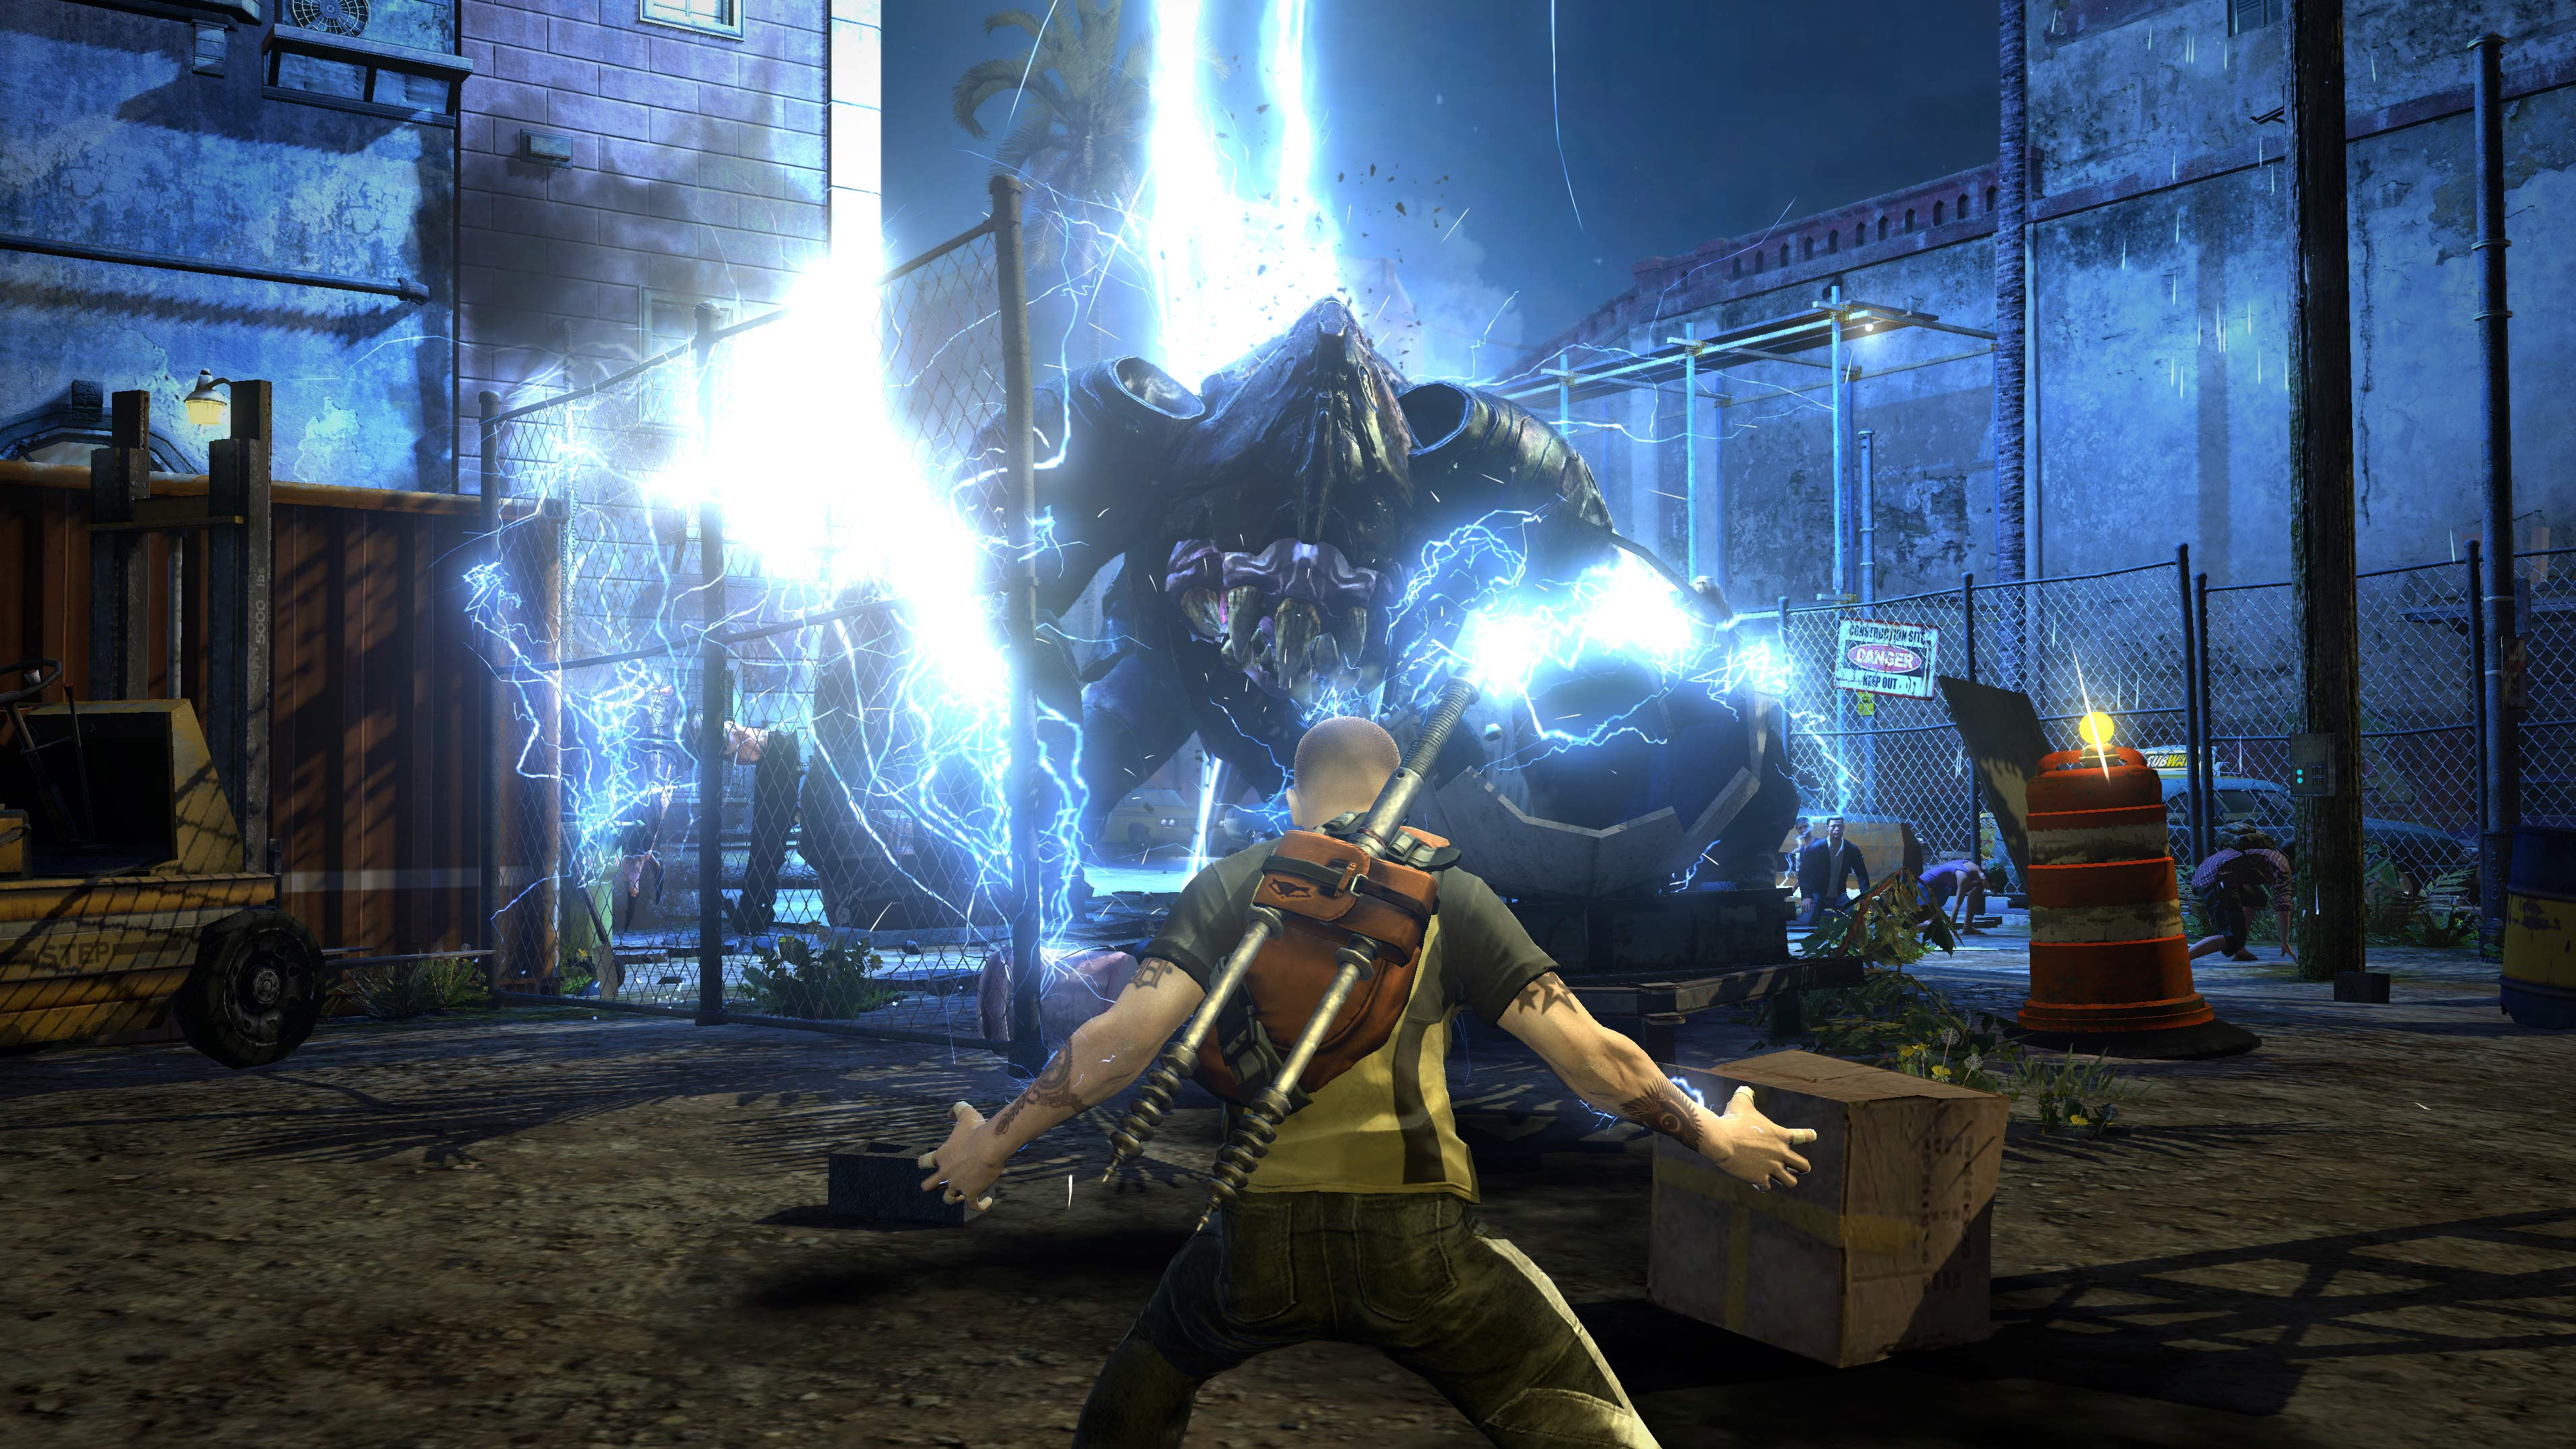 3820x2149 > InFAMOUS 2 Wallpapers